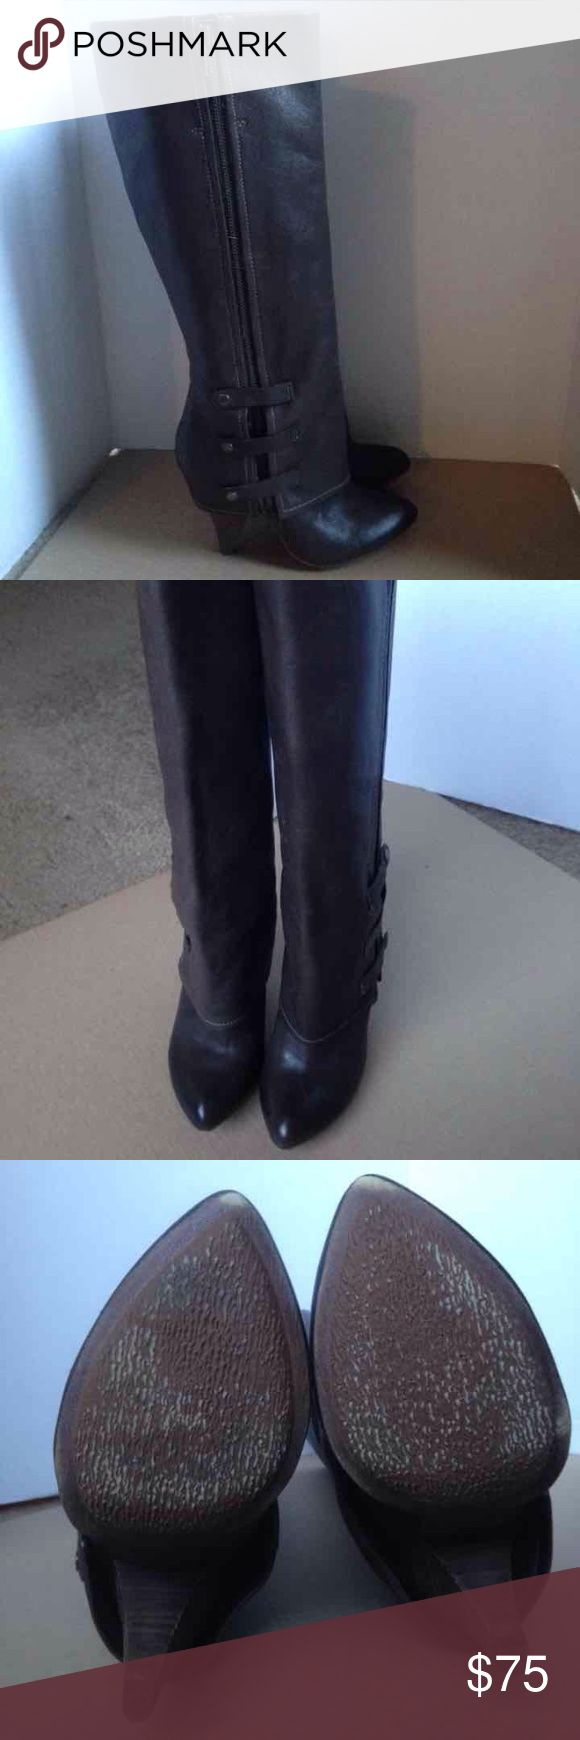 Miss sixty Leather Boots size 37M Miss sixty Leather Boots size 37M in good condition Miss Sixty Shoes